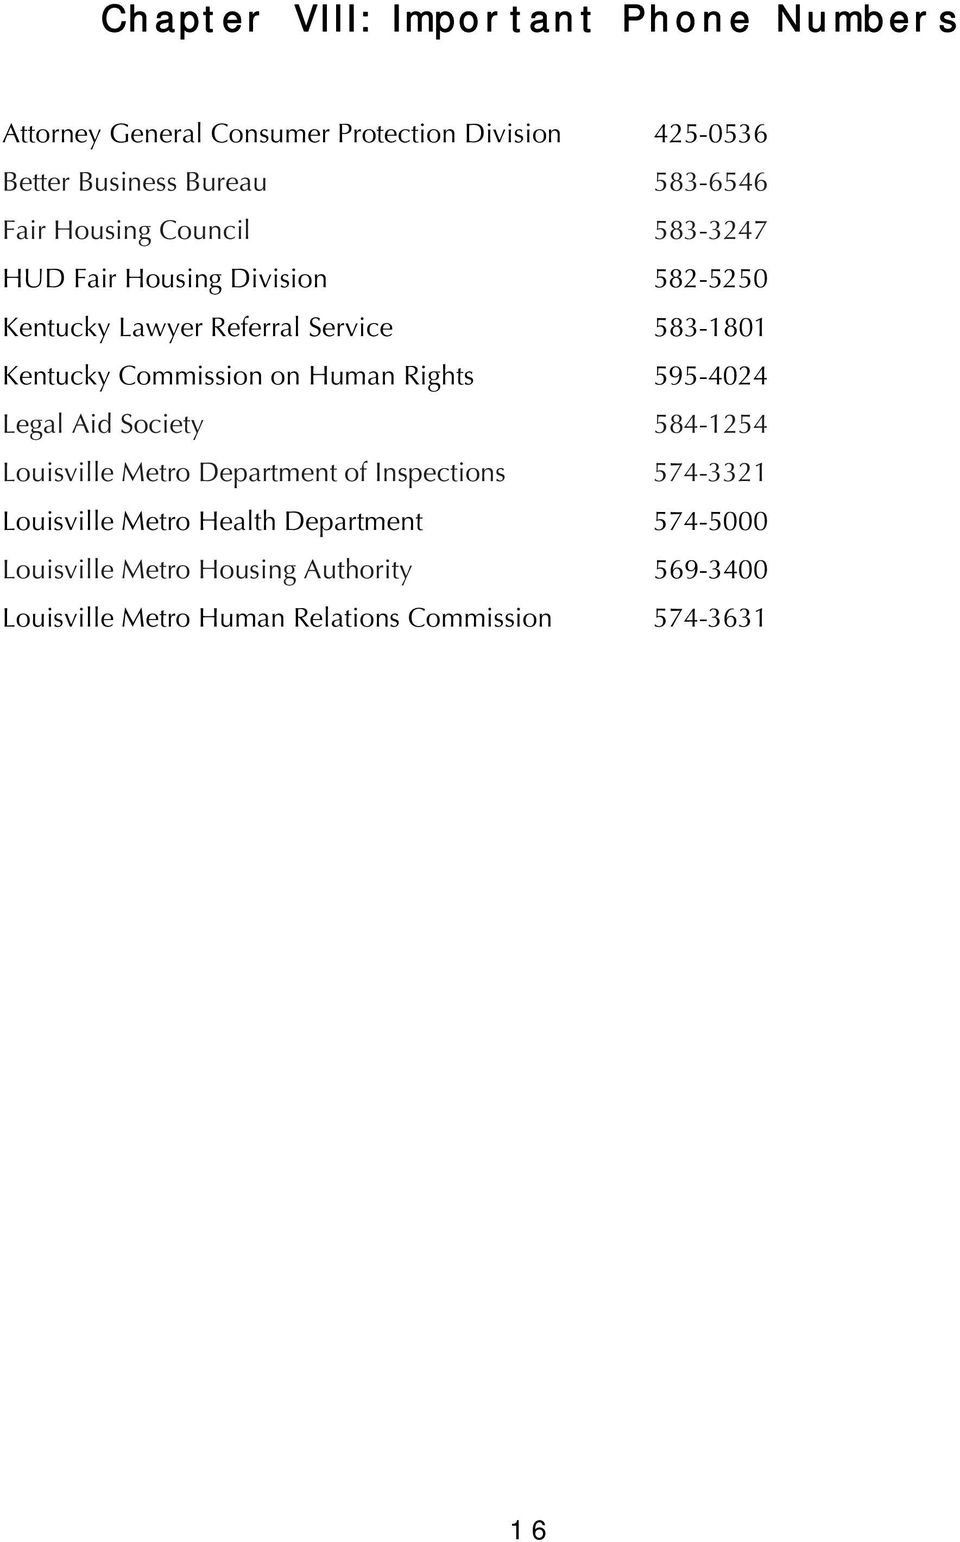 Commission on Human Rights 595-4024 Legal Aid Society 584-1254 Louisville Metro Department of Inspections 574-3321